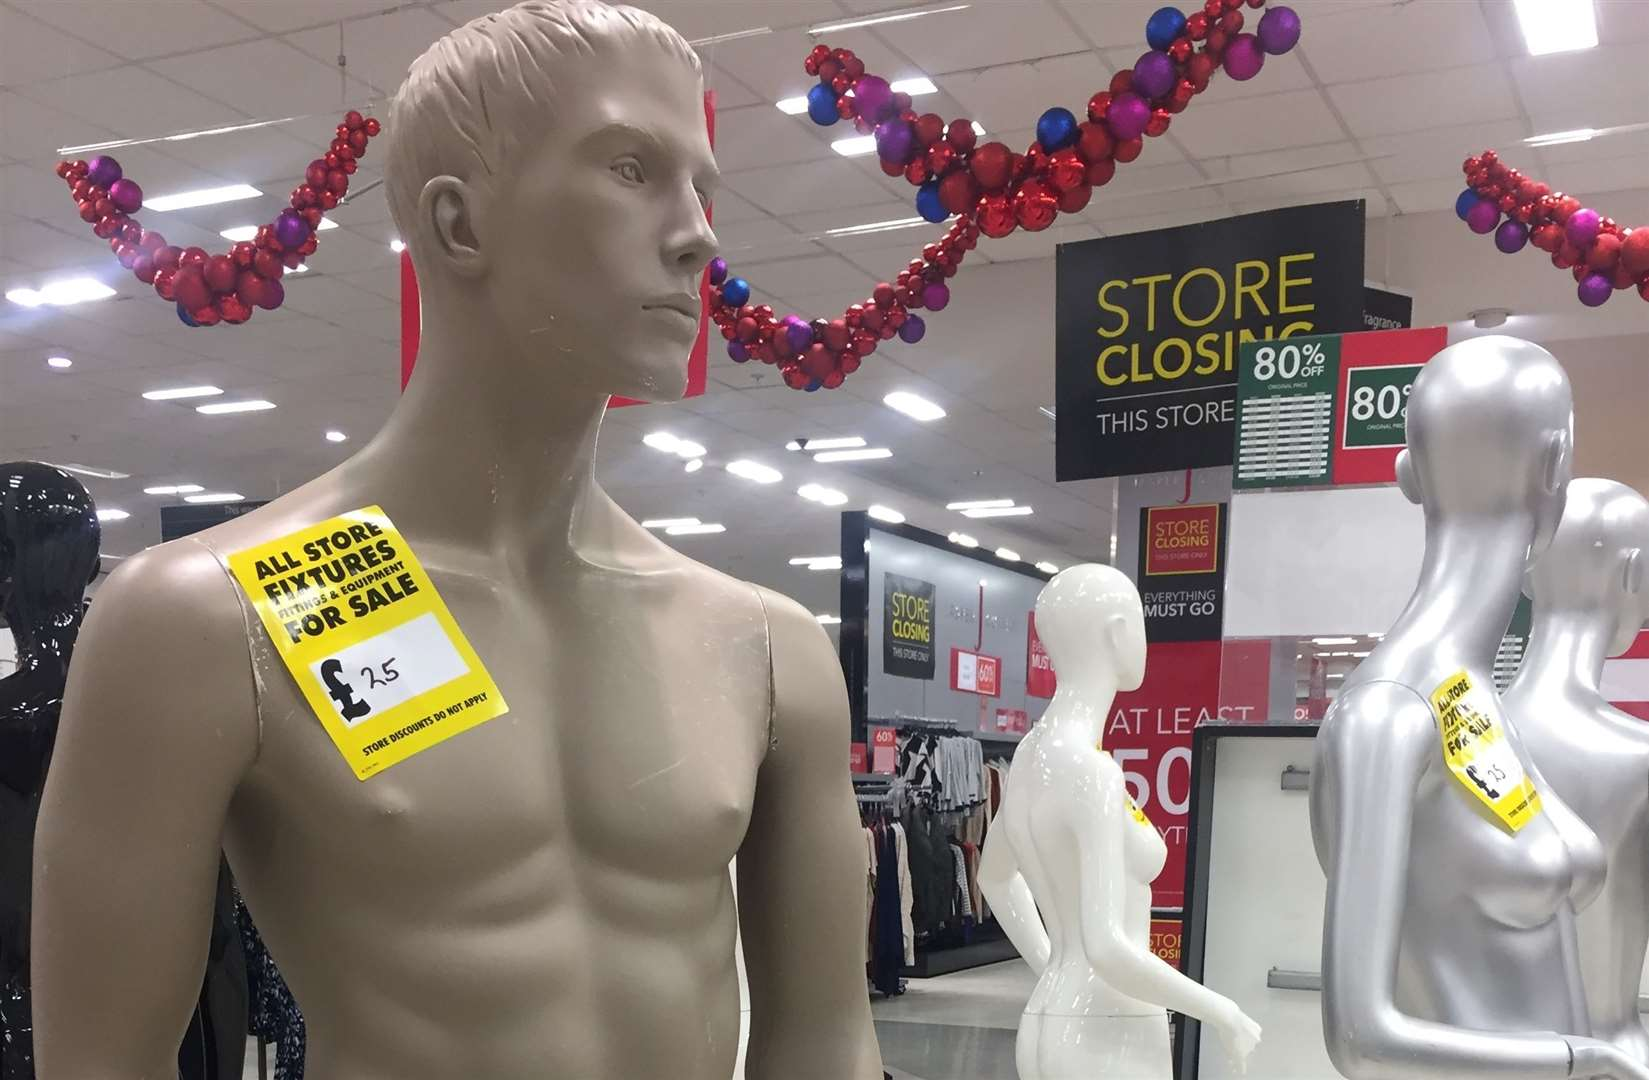 Mannequins on sale at the Ashford Debenhams